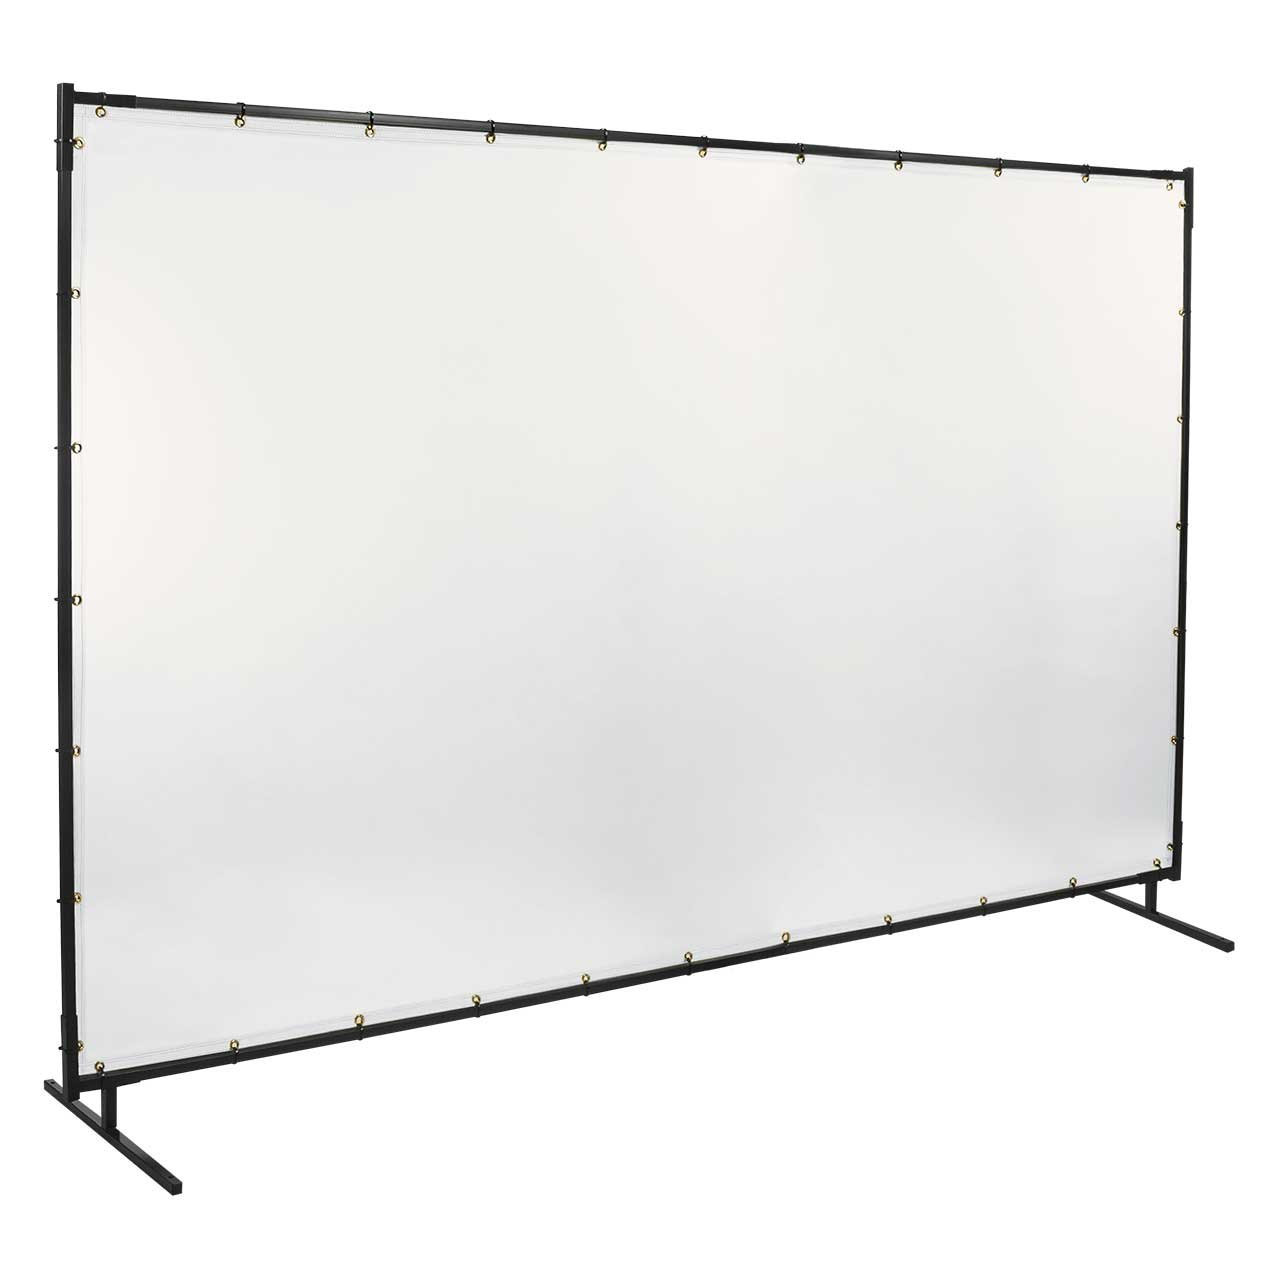 Steiner 539-6X10 Protect-O-Screen Classic Welding Screen with 16 Mil Vinyl Curtain, Clear, 6' x 10' by Steiner